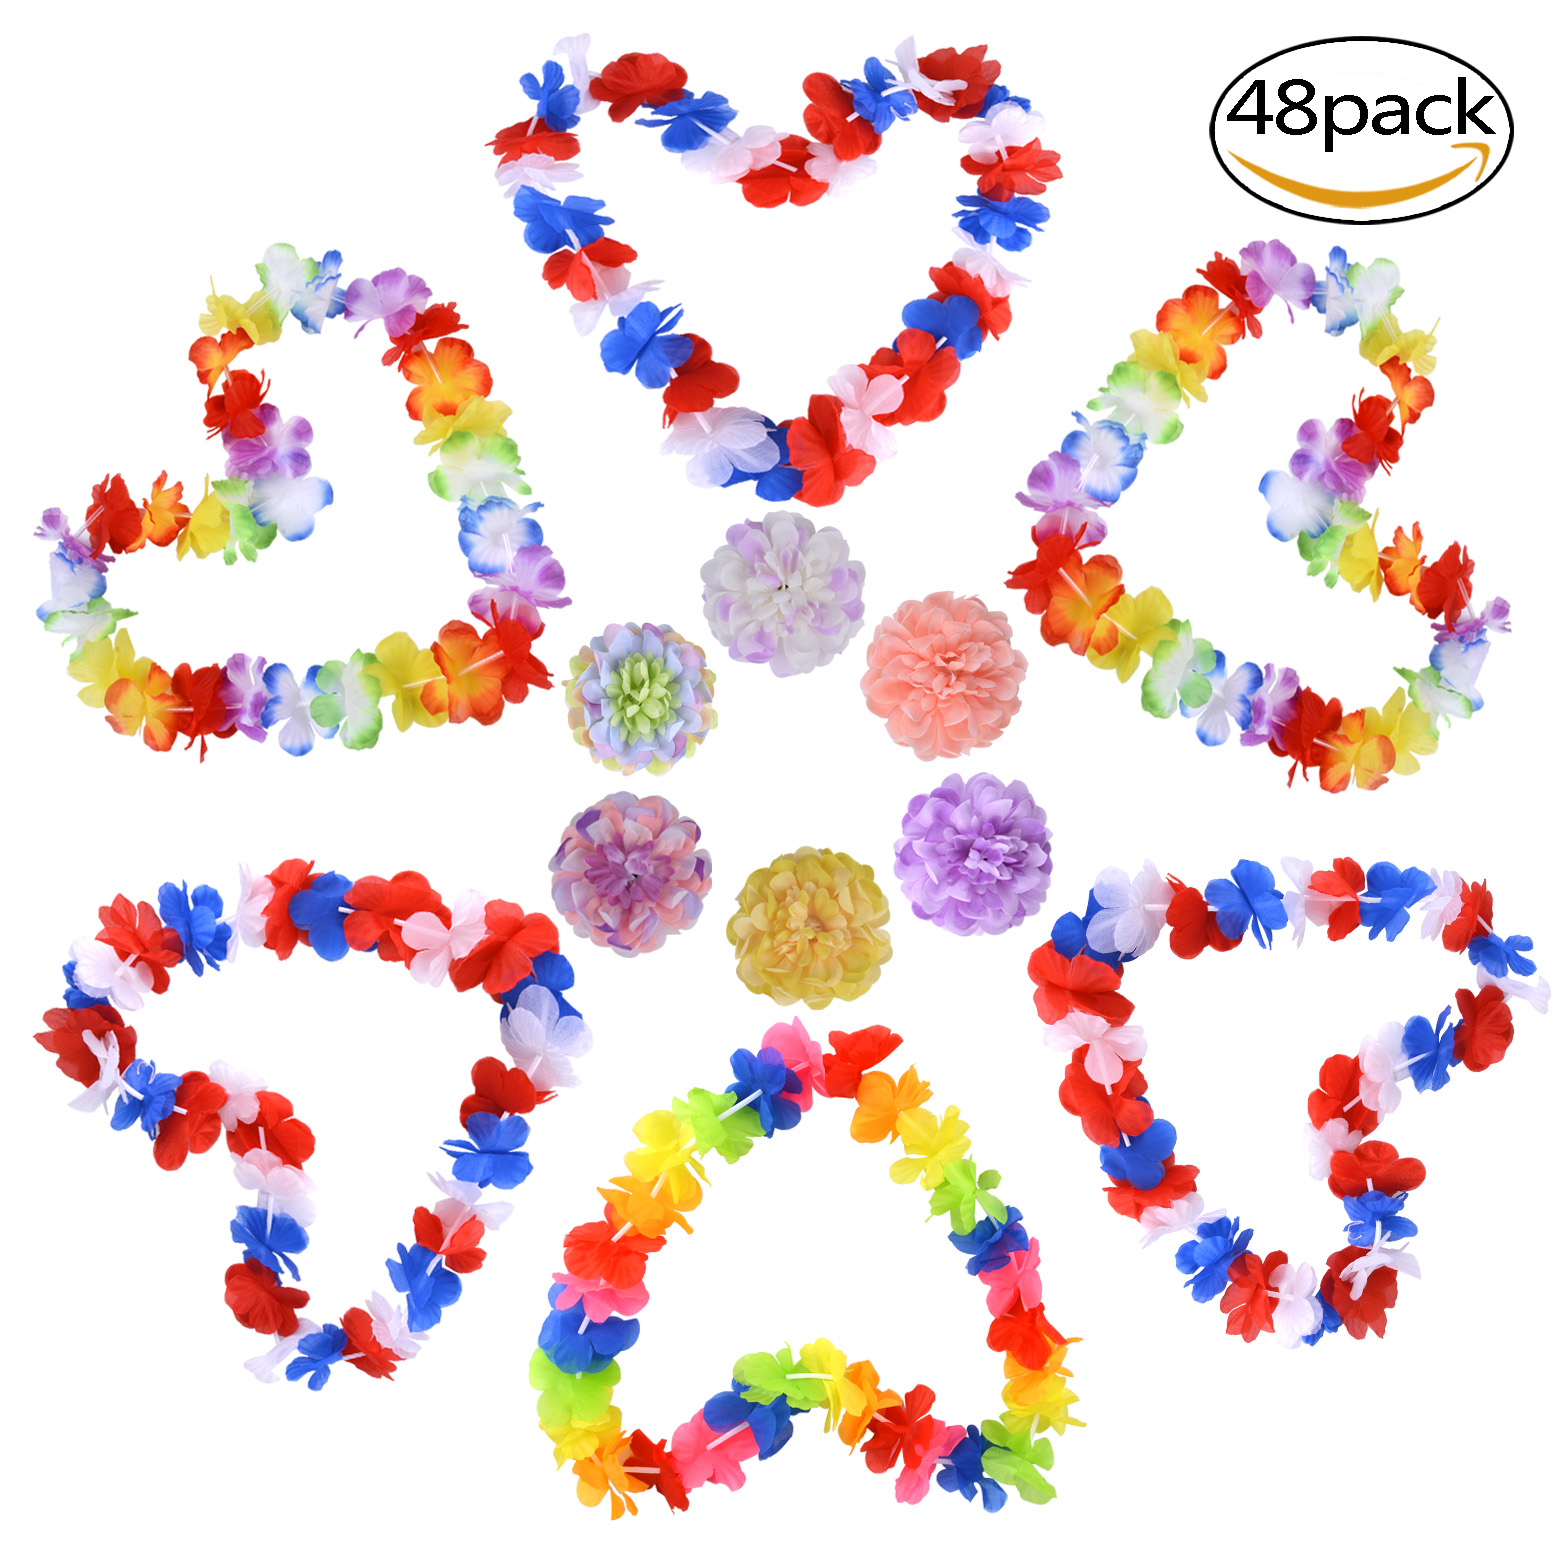 Luau Party Supplies, Coxeer 48 Pcs Silk Luau Themed Hawaiian Leis Jumbo Necklaces for Luau Party Favors(Necklaces and Hair Clips)